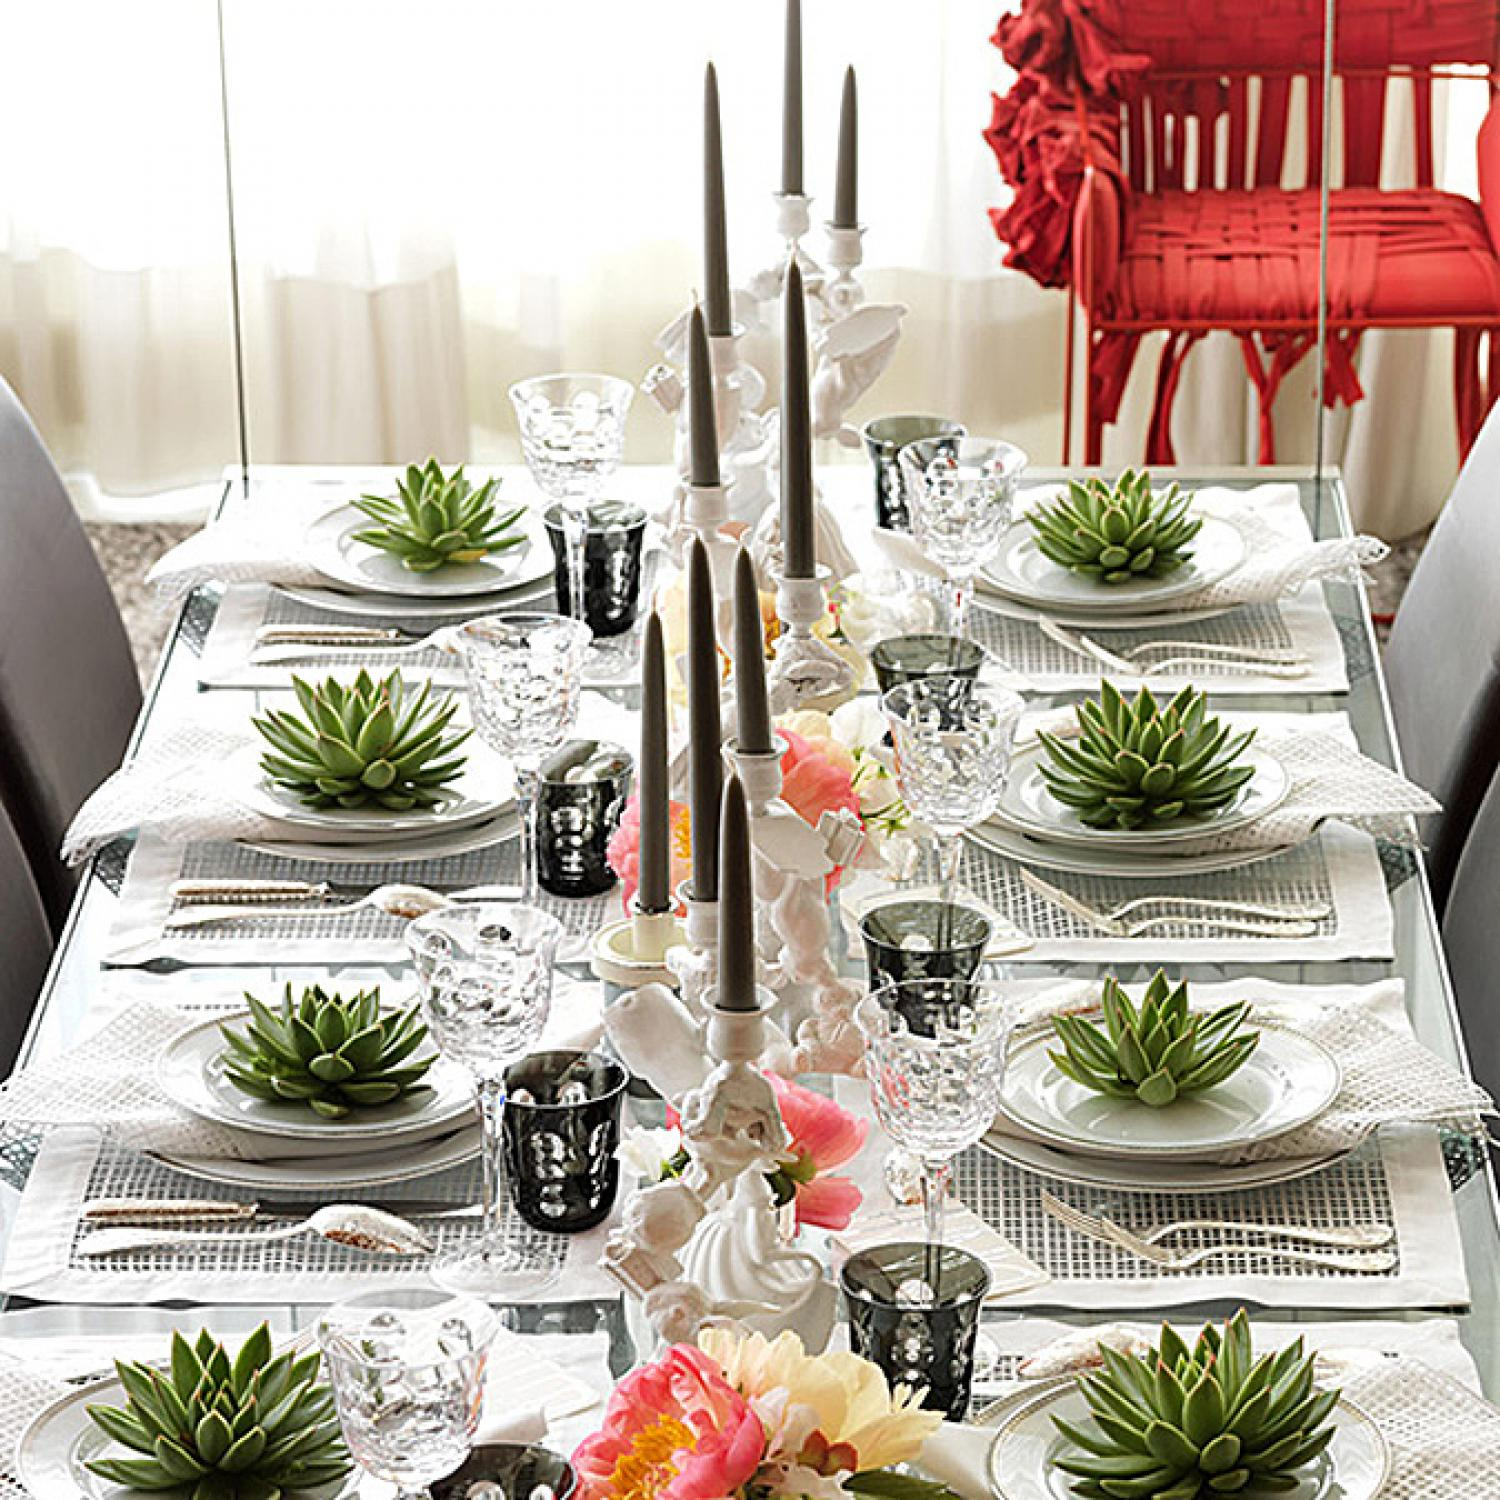 Great Gatherings: Whimsical Dinner Party